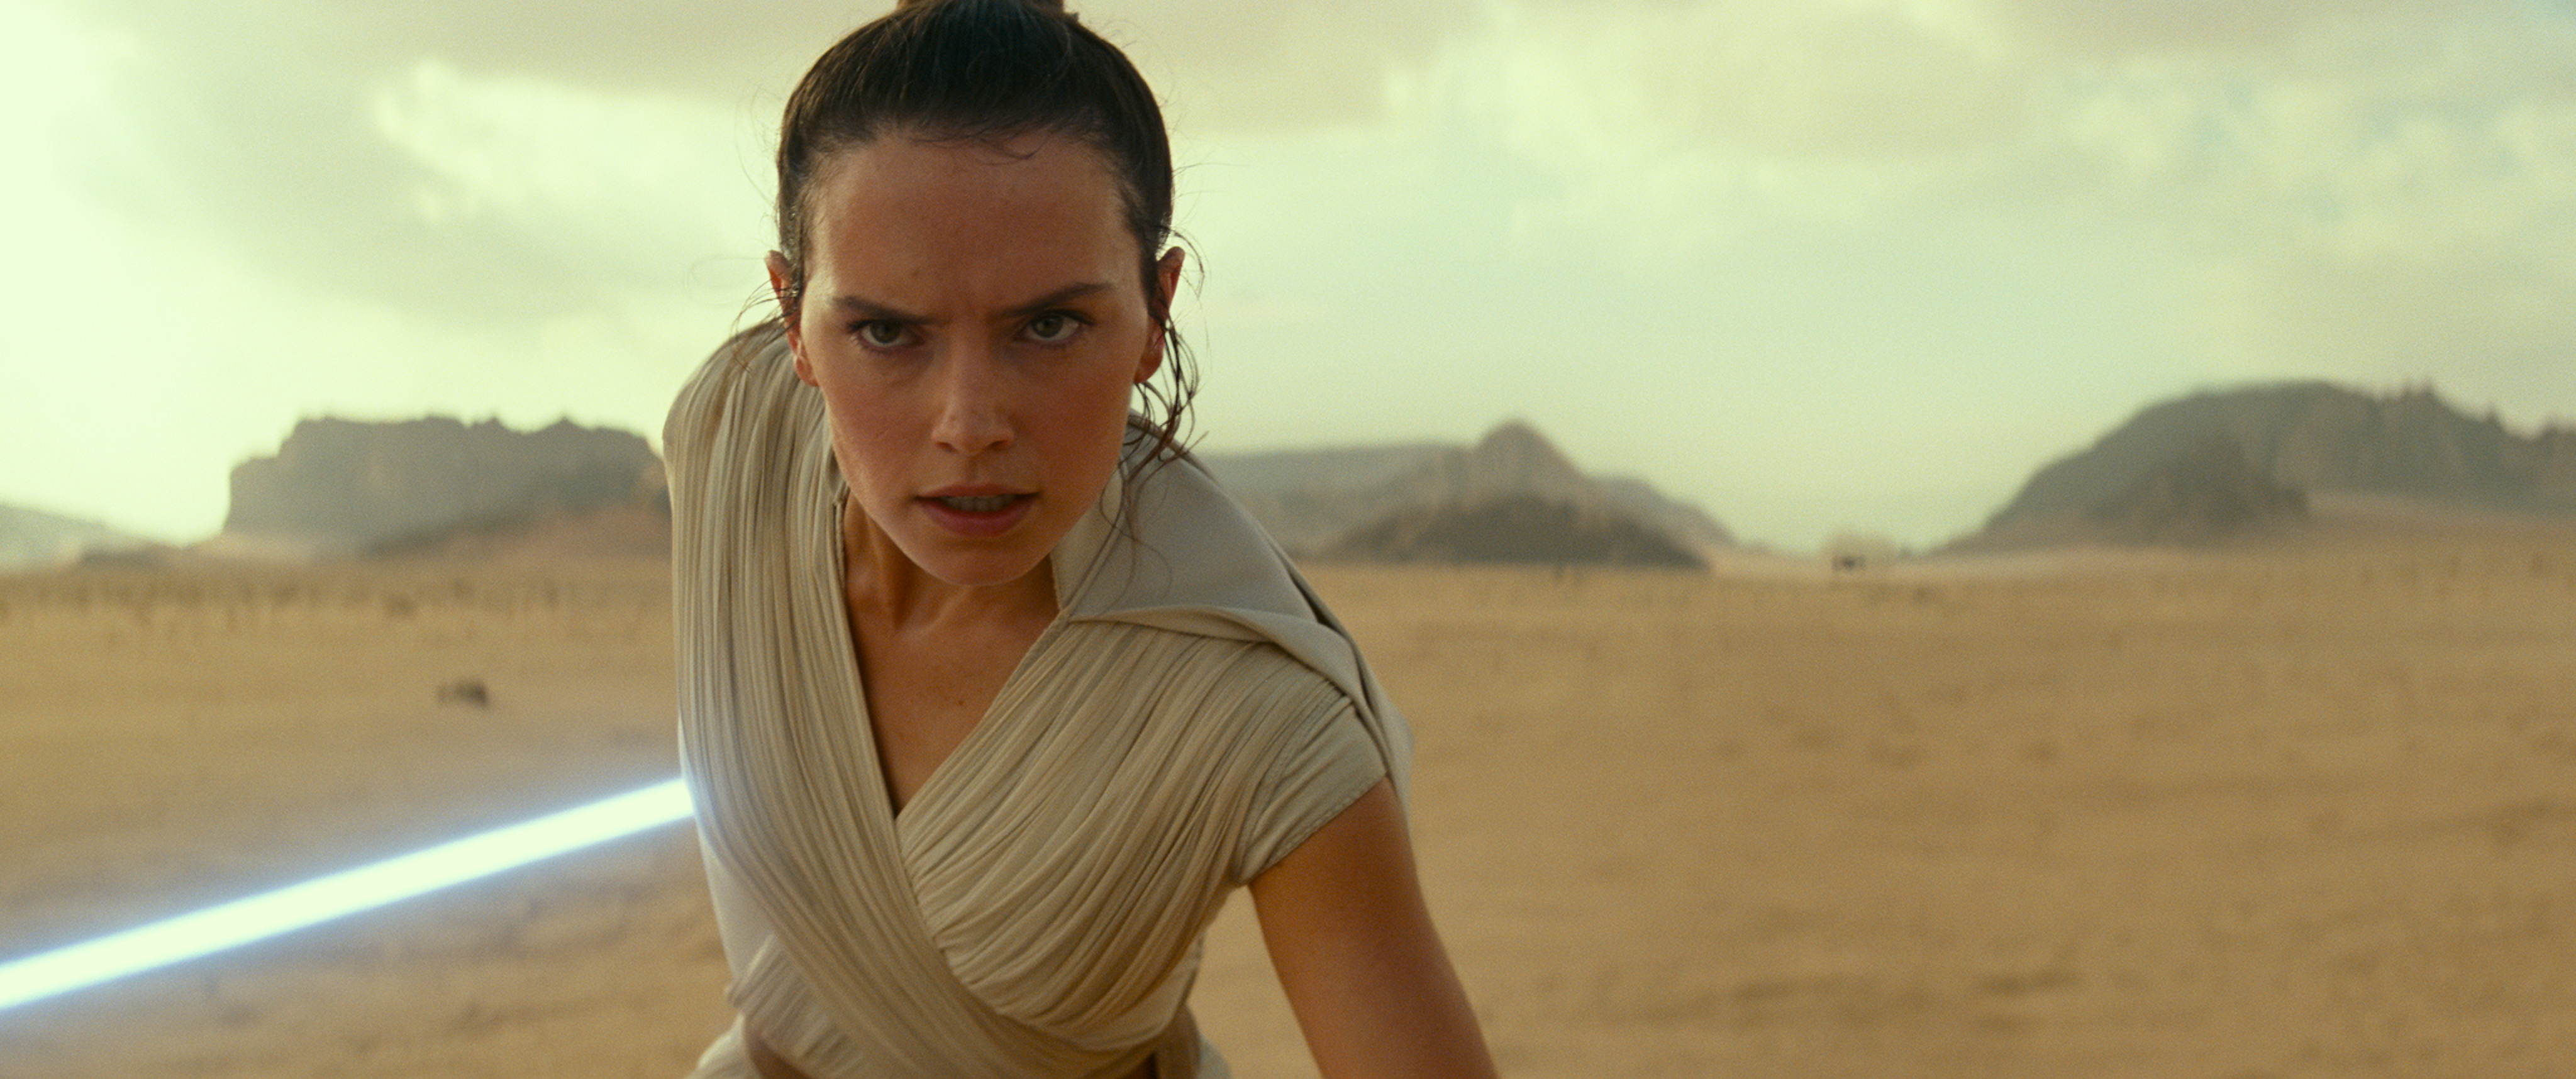 Star Wars: The Rise of Skywalker trailer: what you might've missed